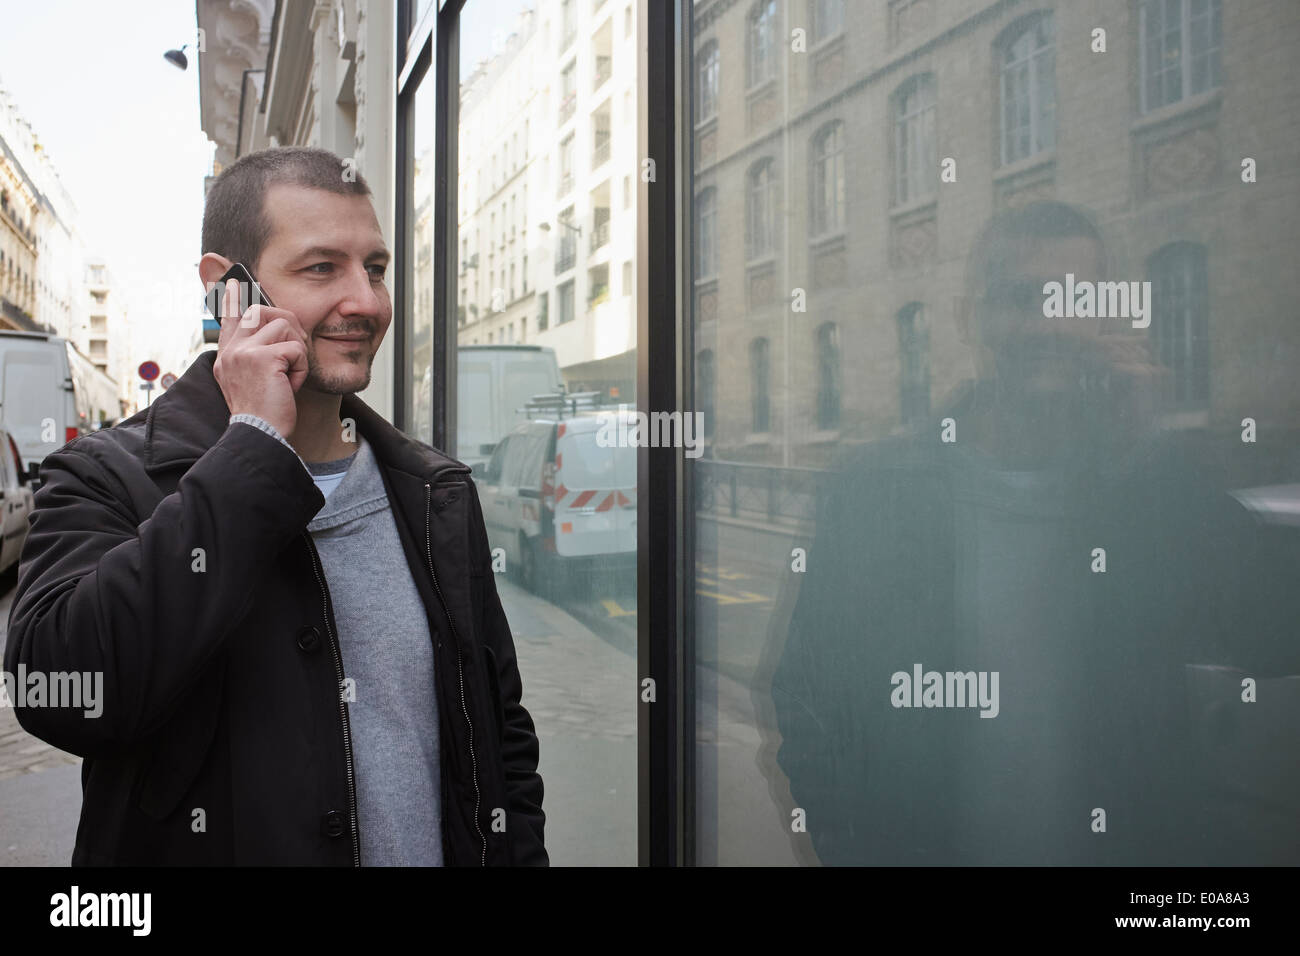 Mid adult man talking on smartphone while window shopping - Stock Image